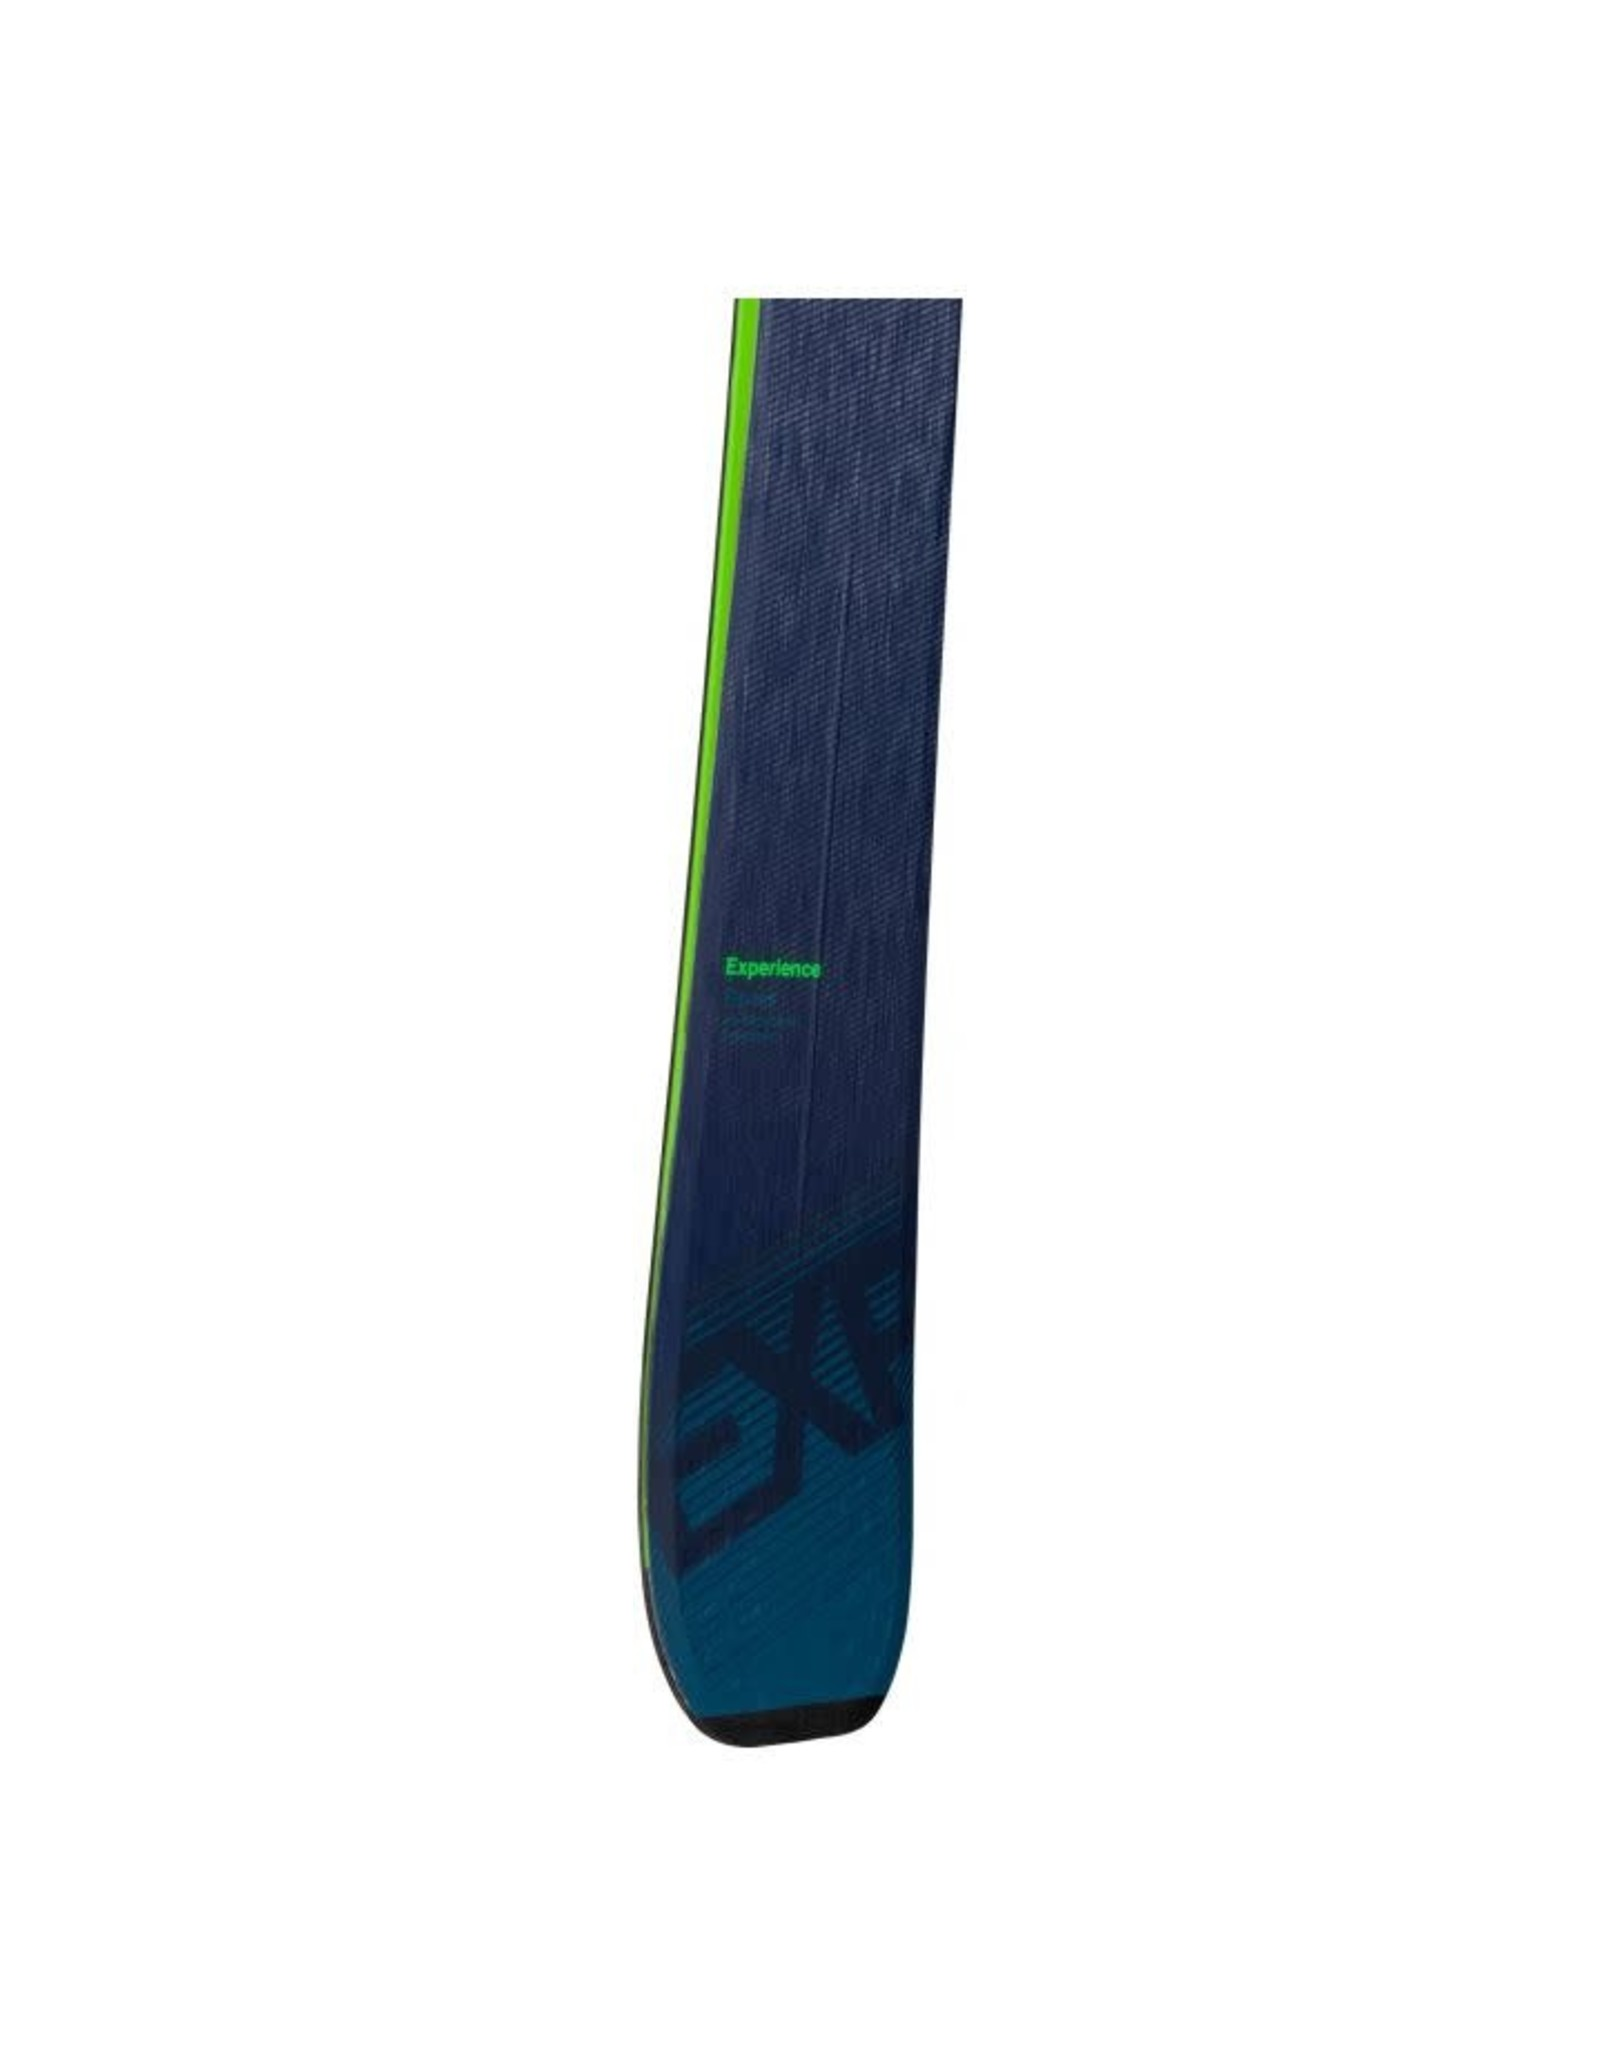 ROSSIGNOL ROSSIGNOL EXPERIENCE 84 AI SKI ALPIN HOMME (SANS FIXATIONS)